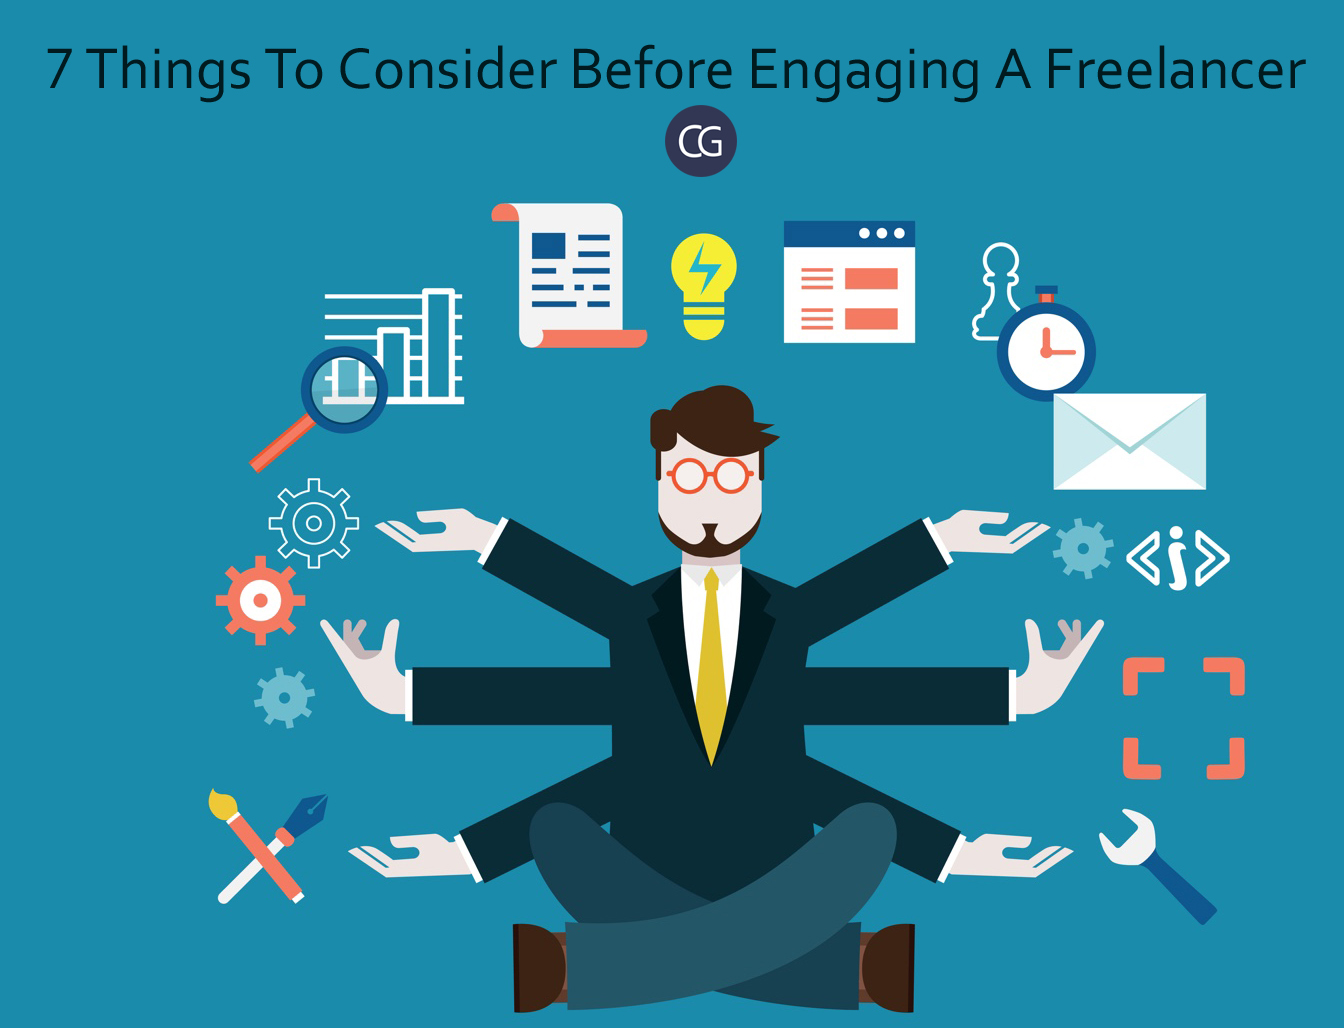 7-things-consider-engaging-freelancer